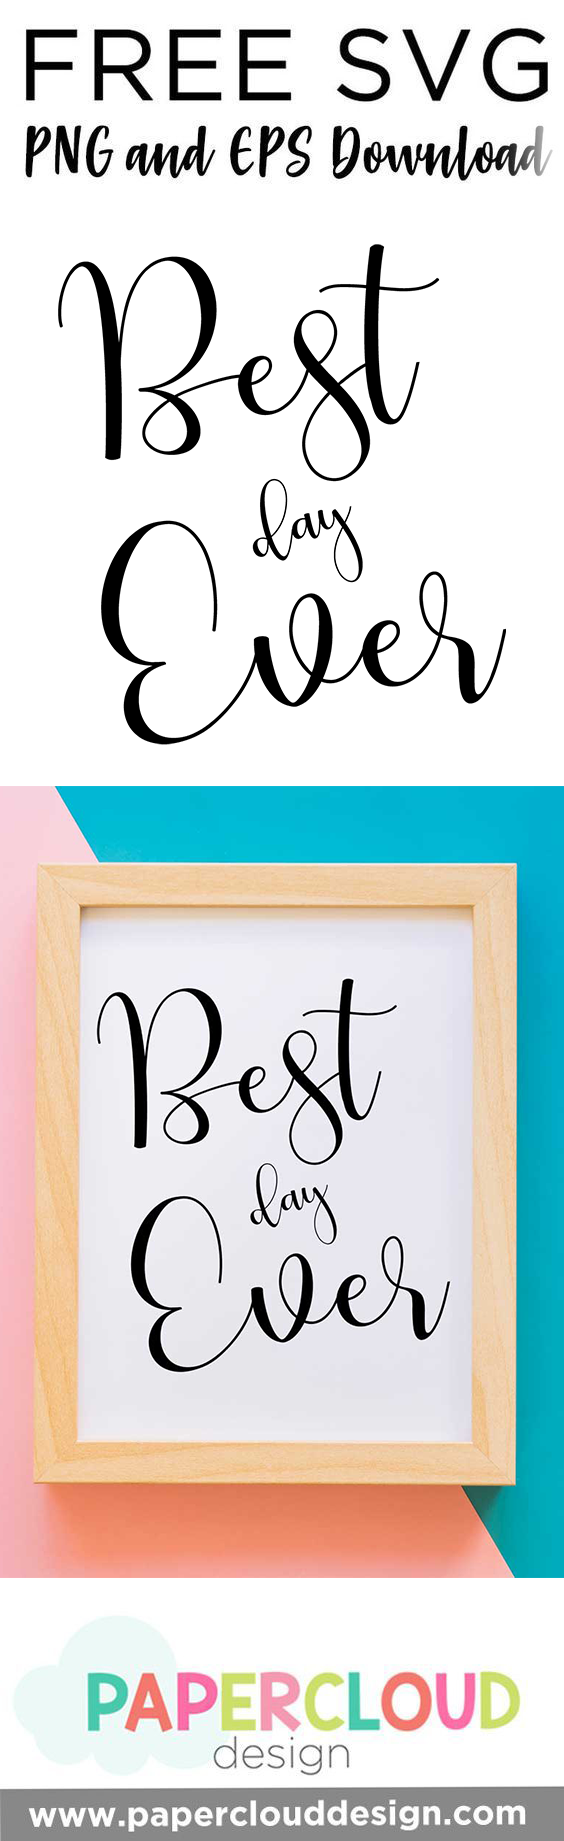 BEST DAY EVER FREE SVG! OMG the SVG gallery is AWESOME